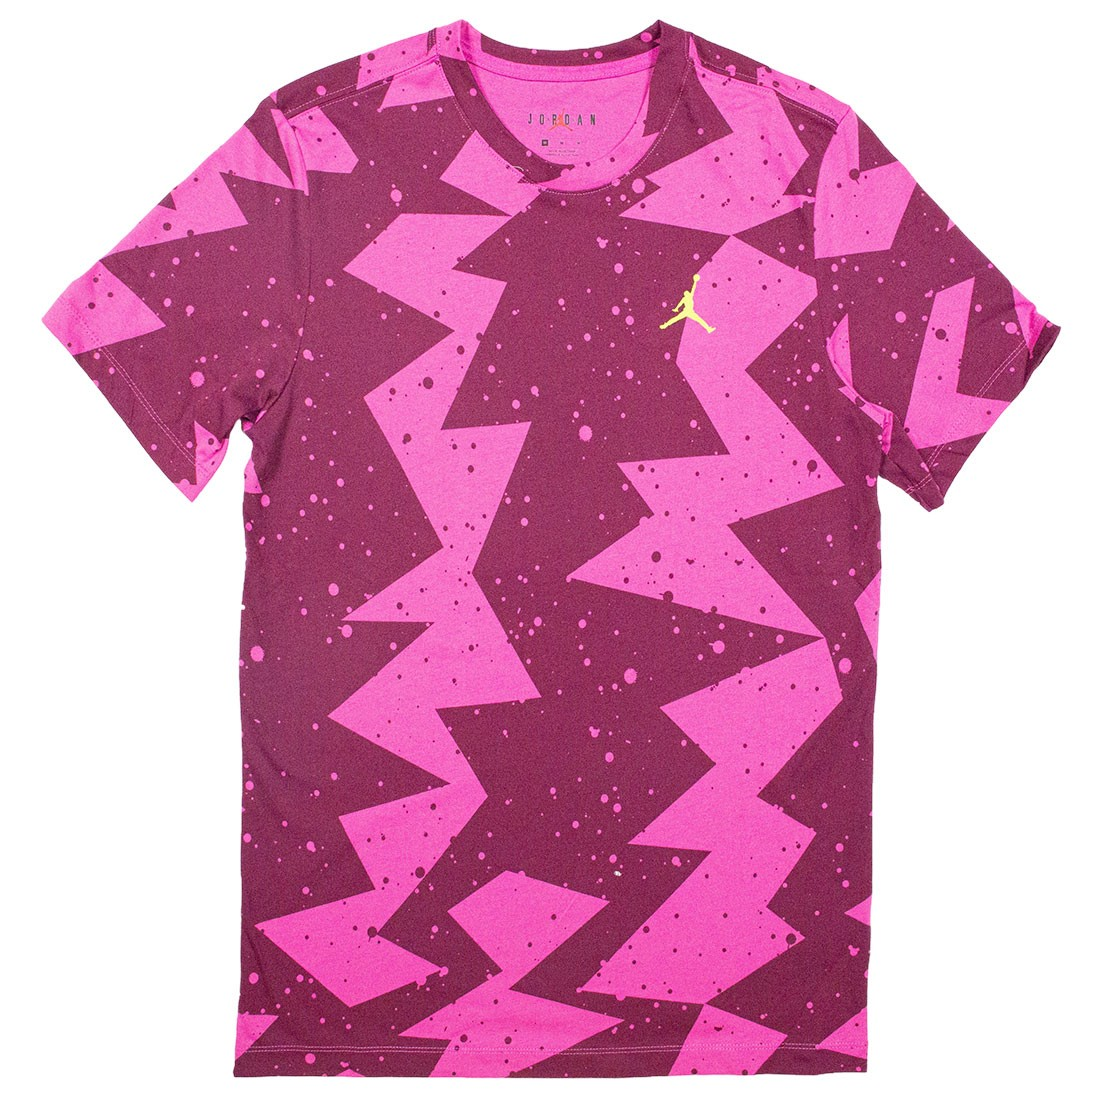 Jordan Men Printed Poolside Tee (active fuchsia)